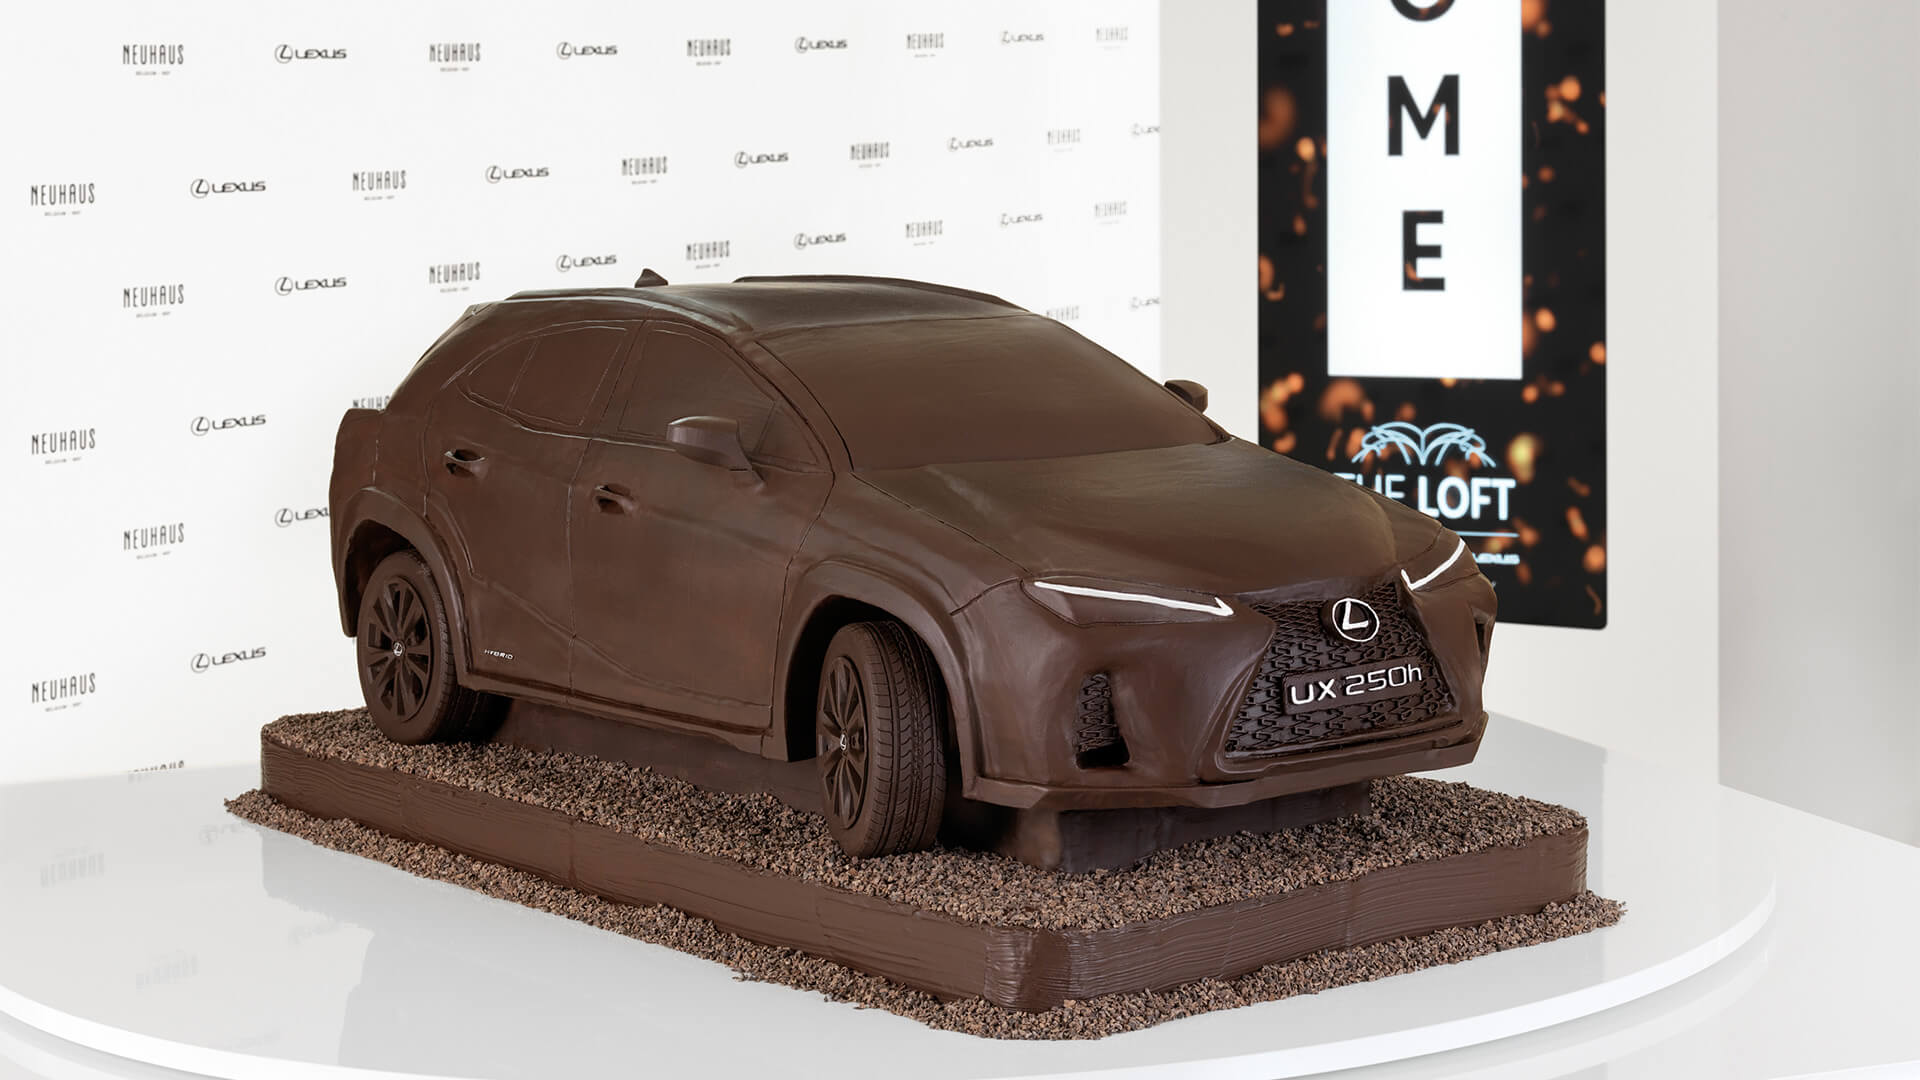 2019 lexus lounge UX Chocolate Car 1920x1080 01